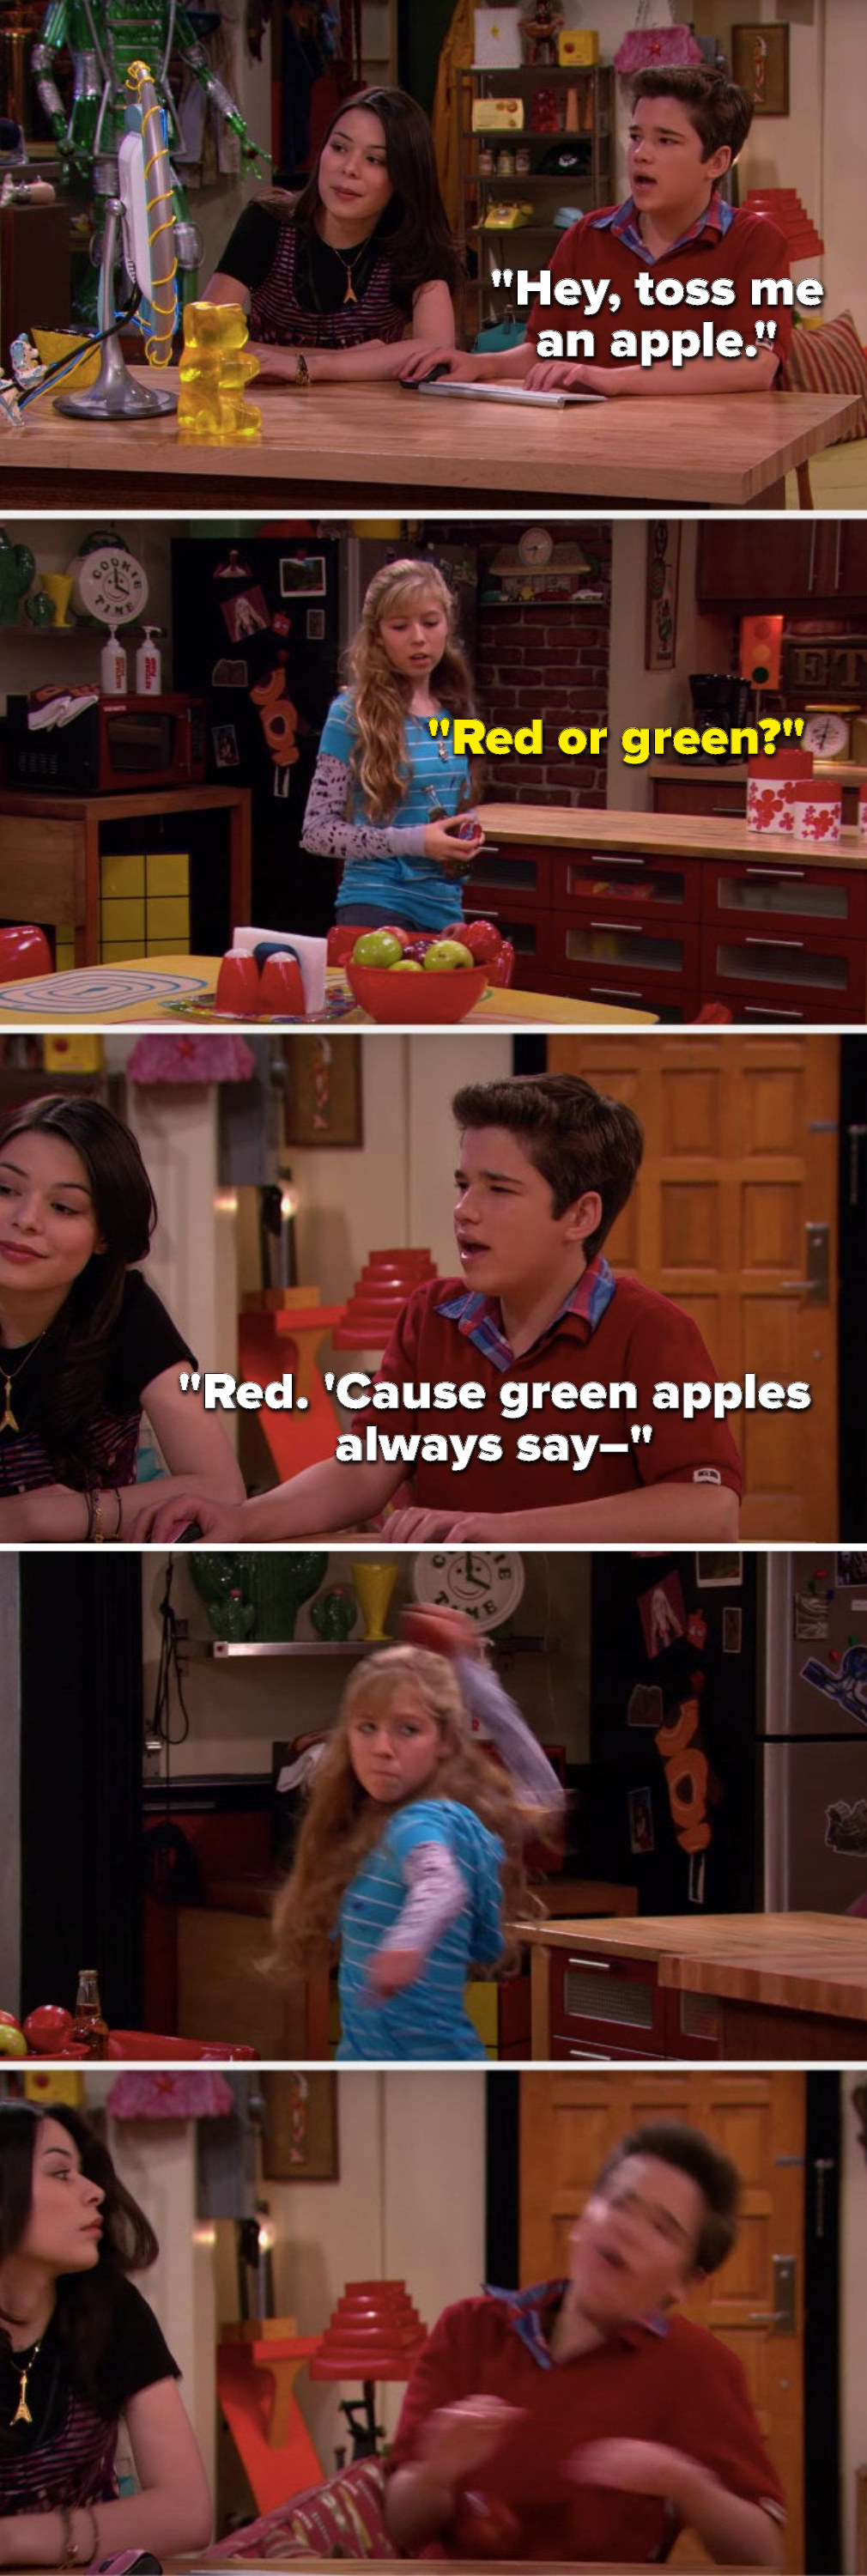 """Freddie says, """"Hey, toss me an apple,"""" Sam asks, """"Red or green,"""" Freddie says, """"Red, 'cause green apples always say–"""" and Sam throws a red apple at him and hits him in the face"""